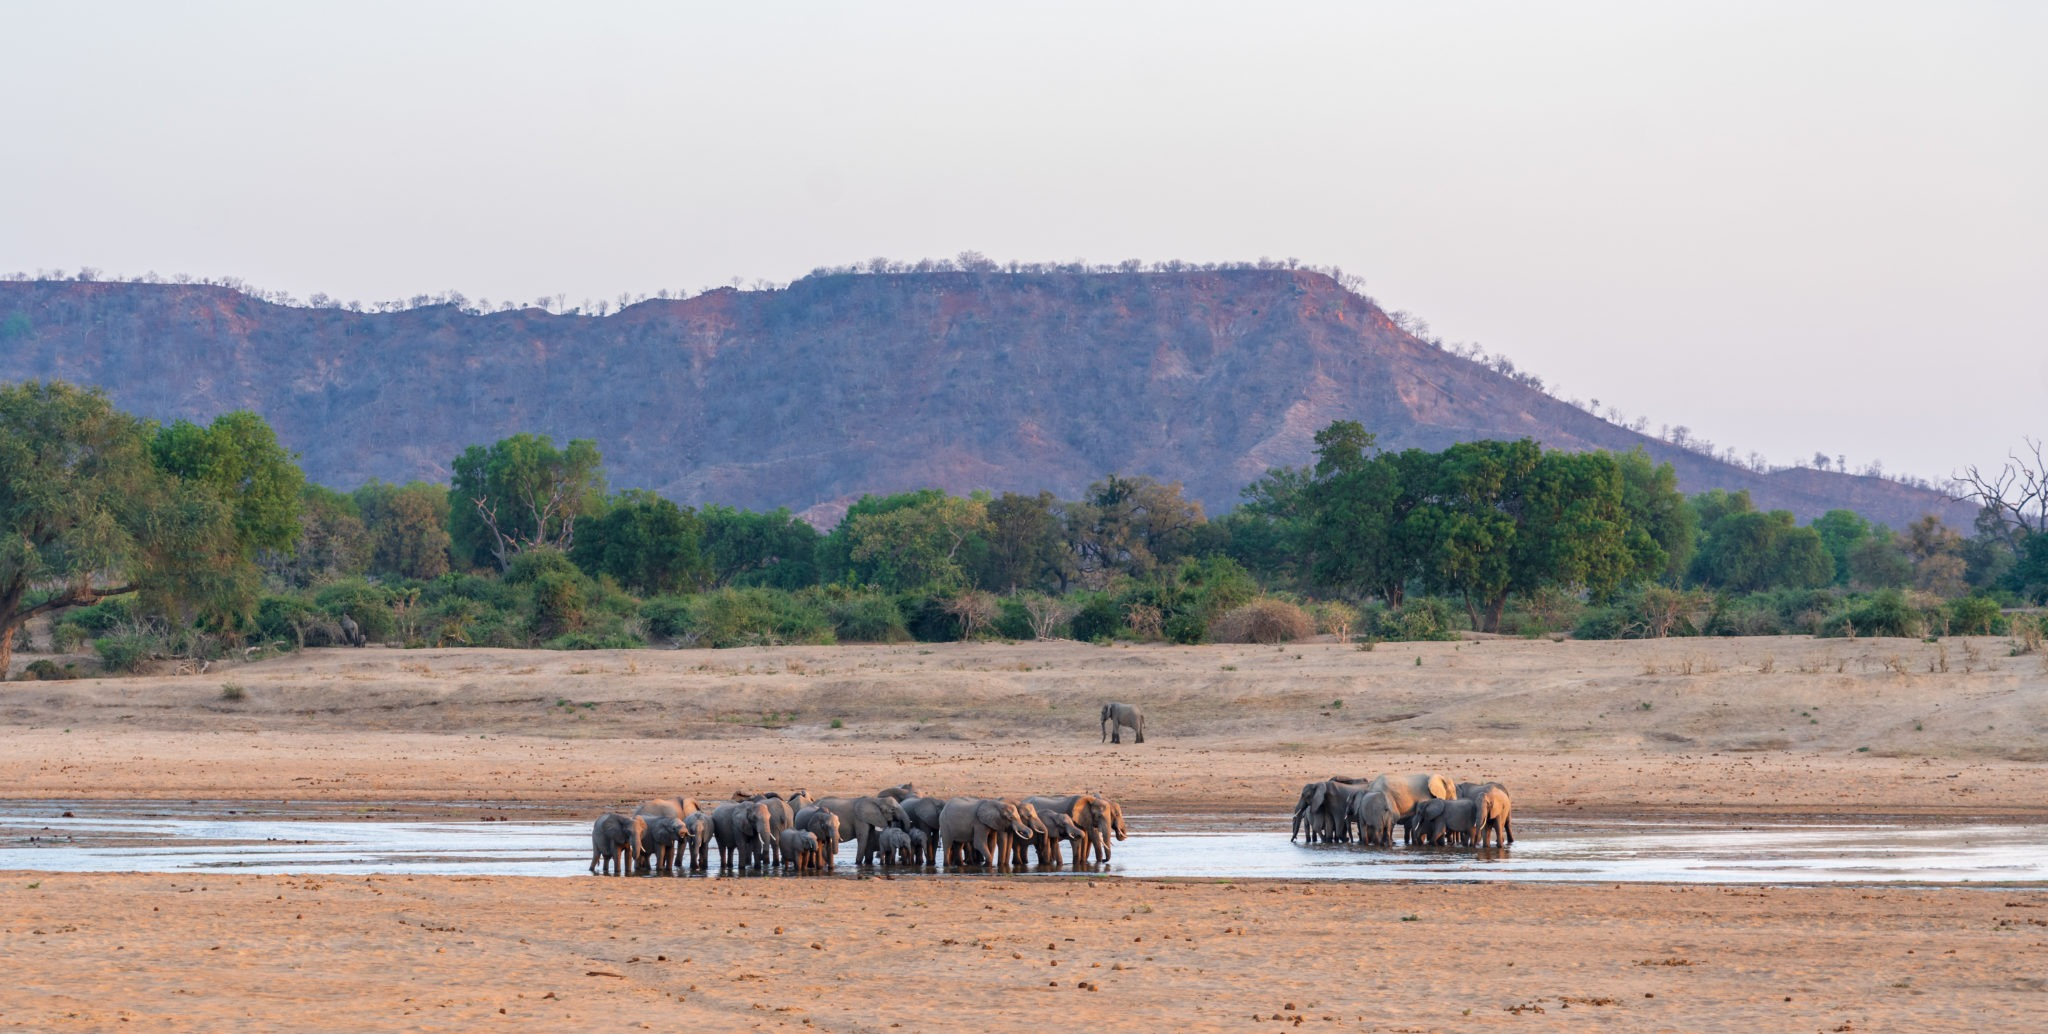 elephants frank steenhuisen private guide zimbabwe gonarezhou